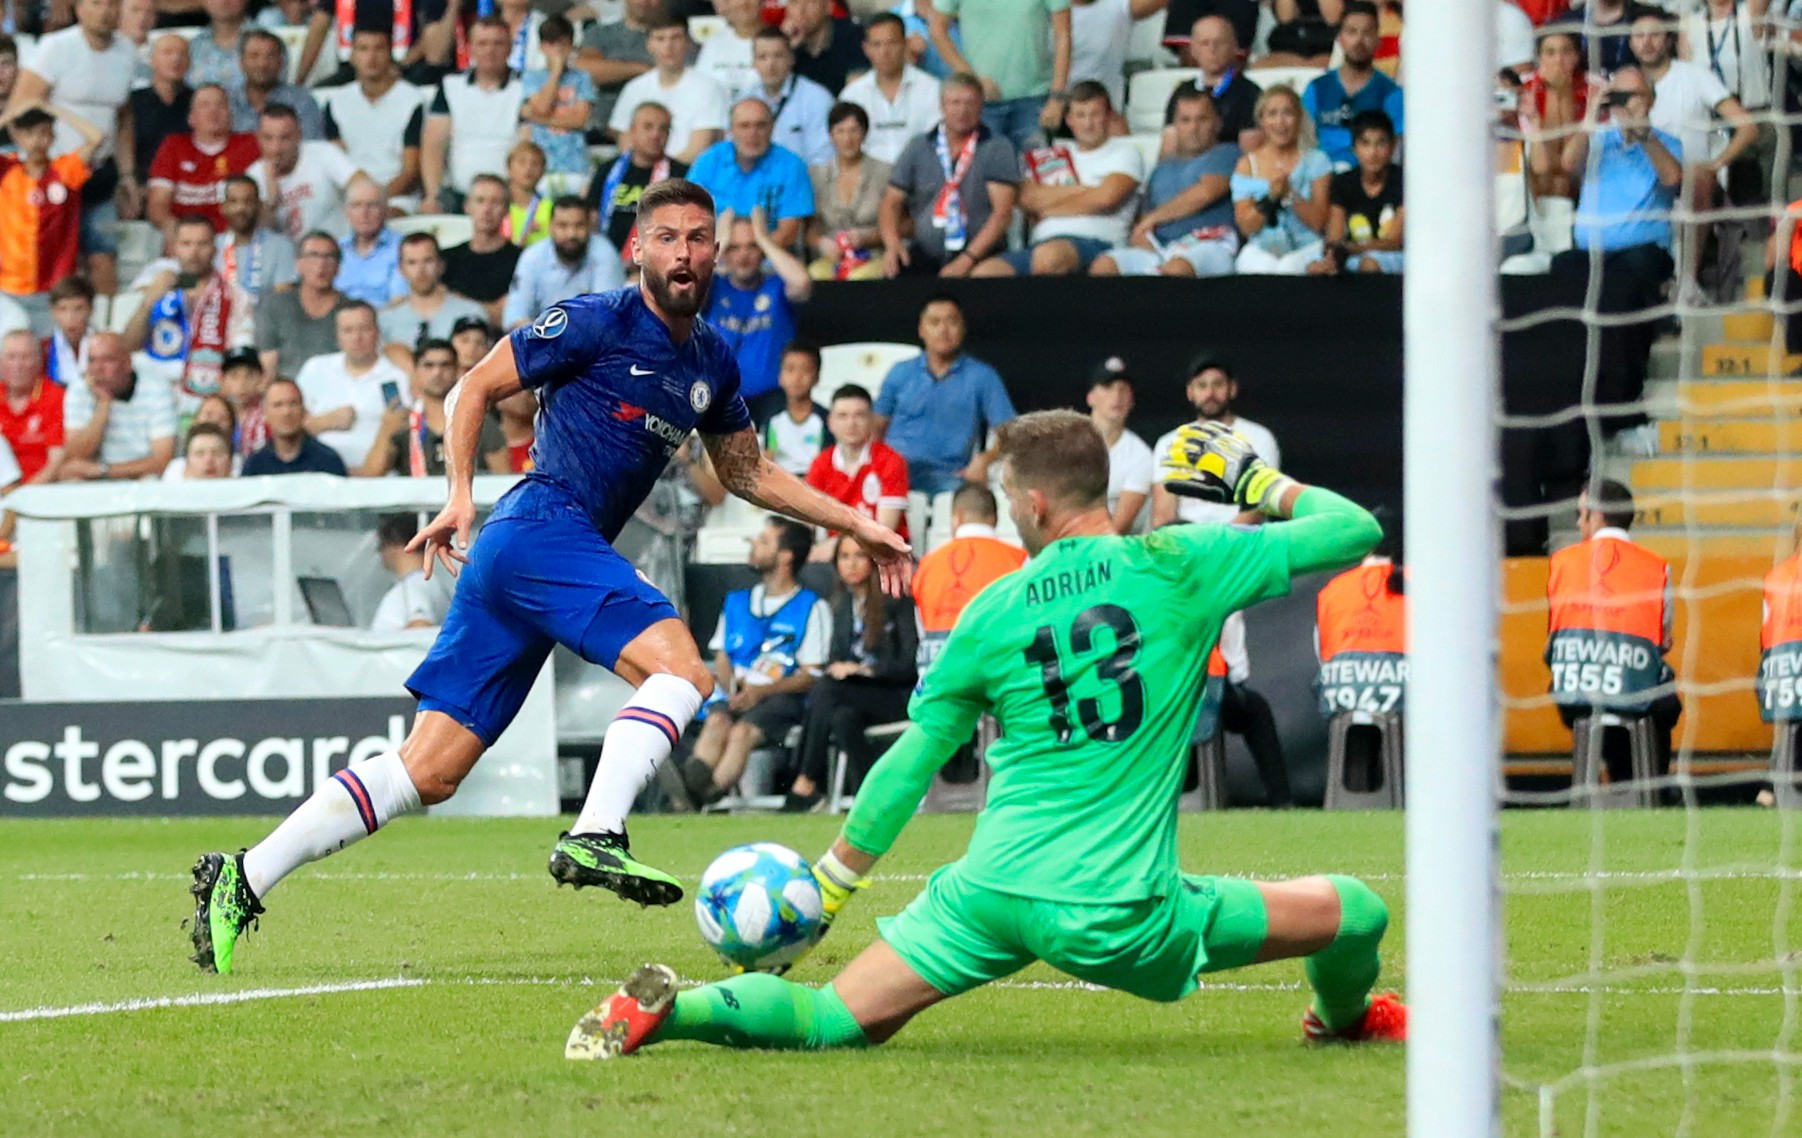 The Frenchman's only Chelsea goal so far this season came in the Super Cup against Liverpool